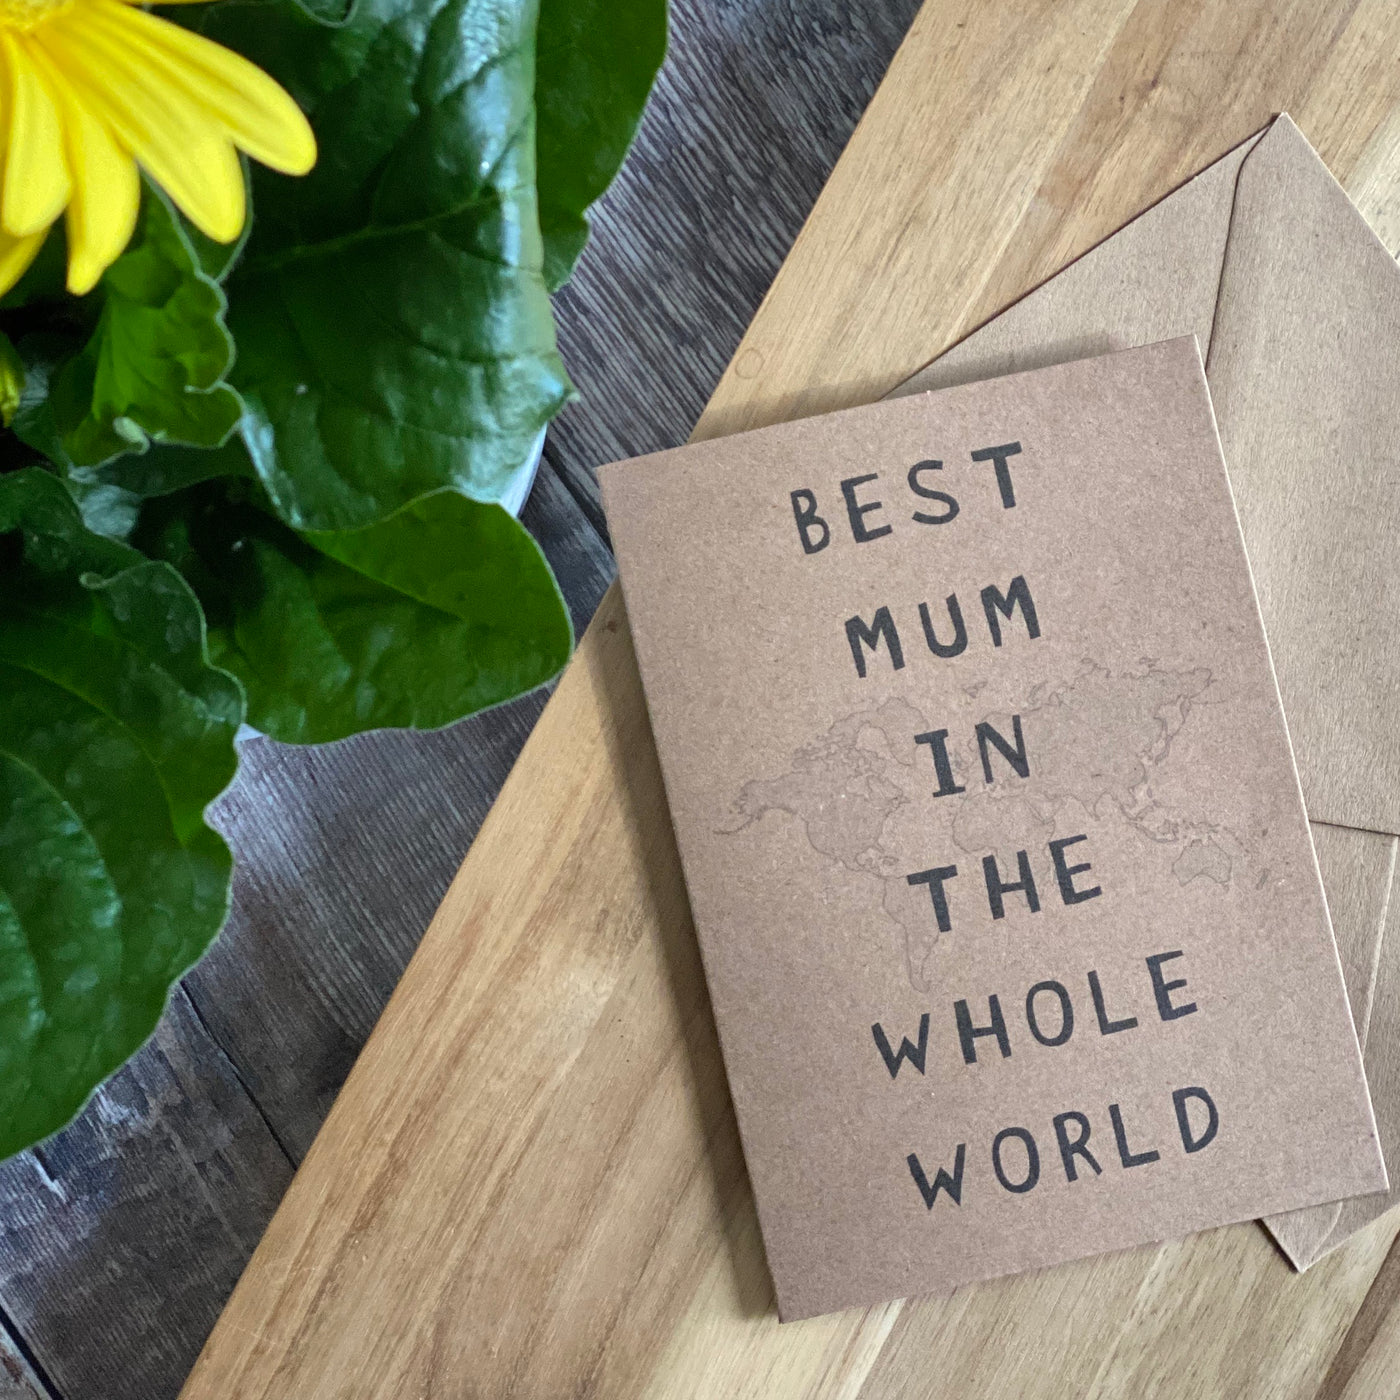 Best Mum in The Whole World Greetings Card